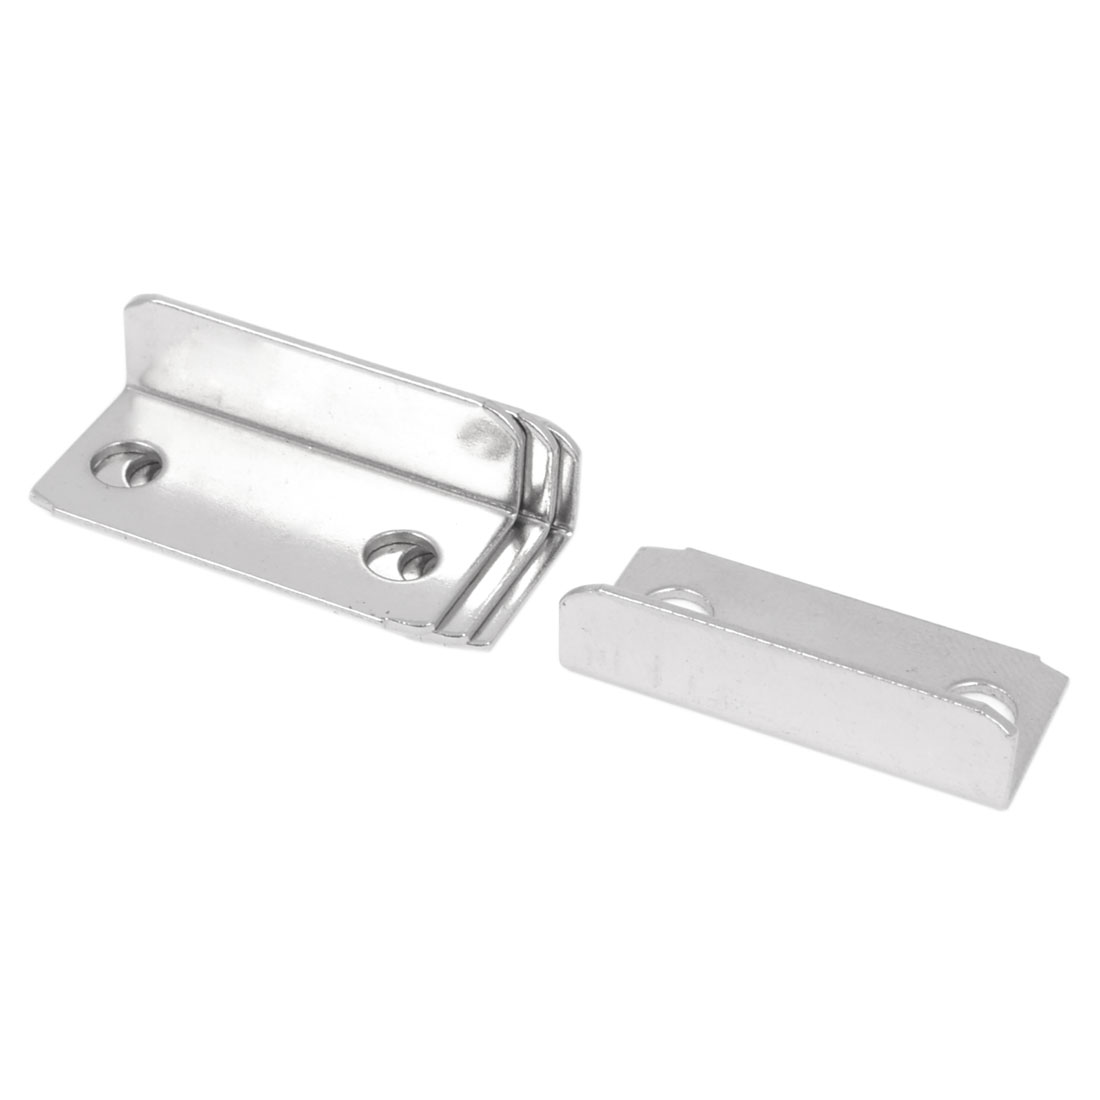 Home Window 29 x 14 x 9mm Aluminum Alloy Right Angle Corner Bracket 4pcs